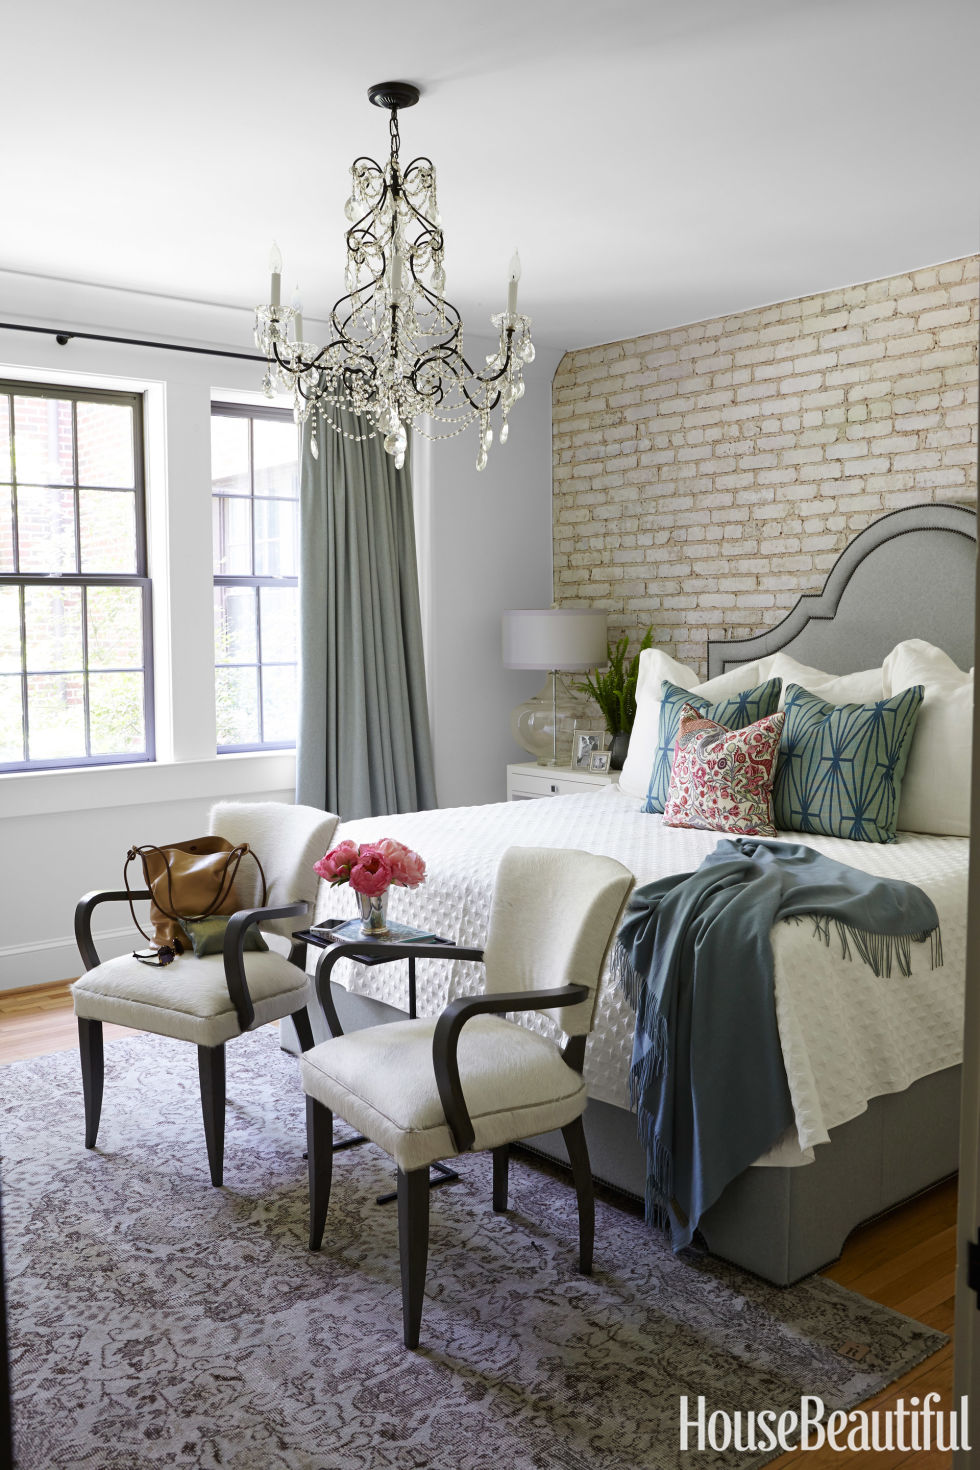 bedroom ideas 175 stylish bedroom decorating ideas - design pictures of beautiful modern  bedrooms GMRVYSU